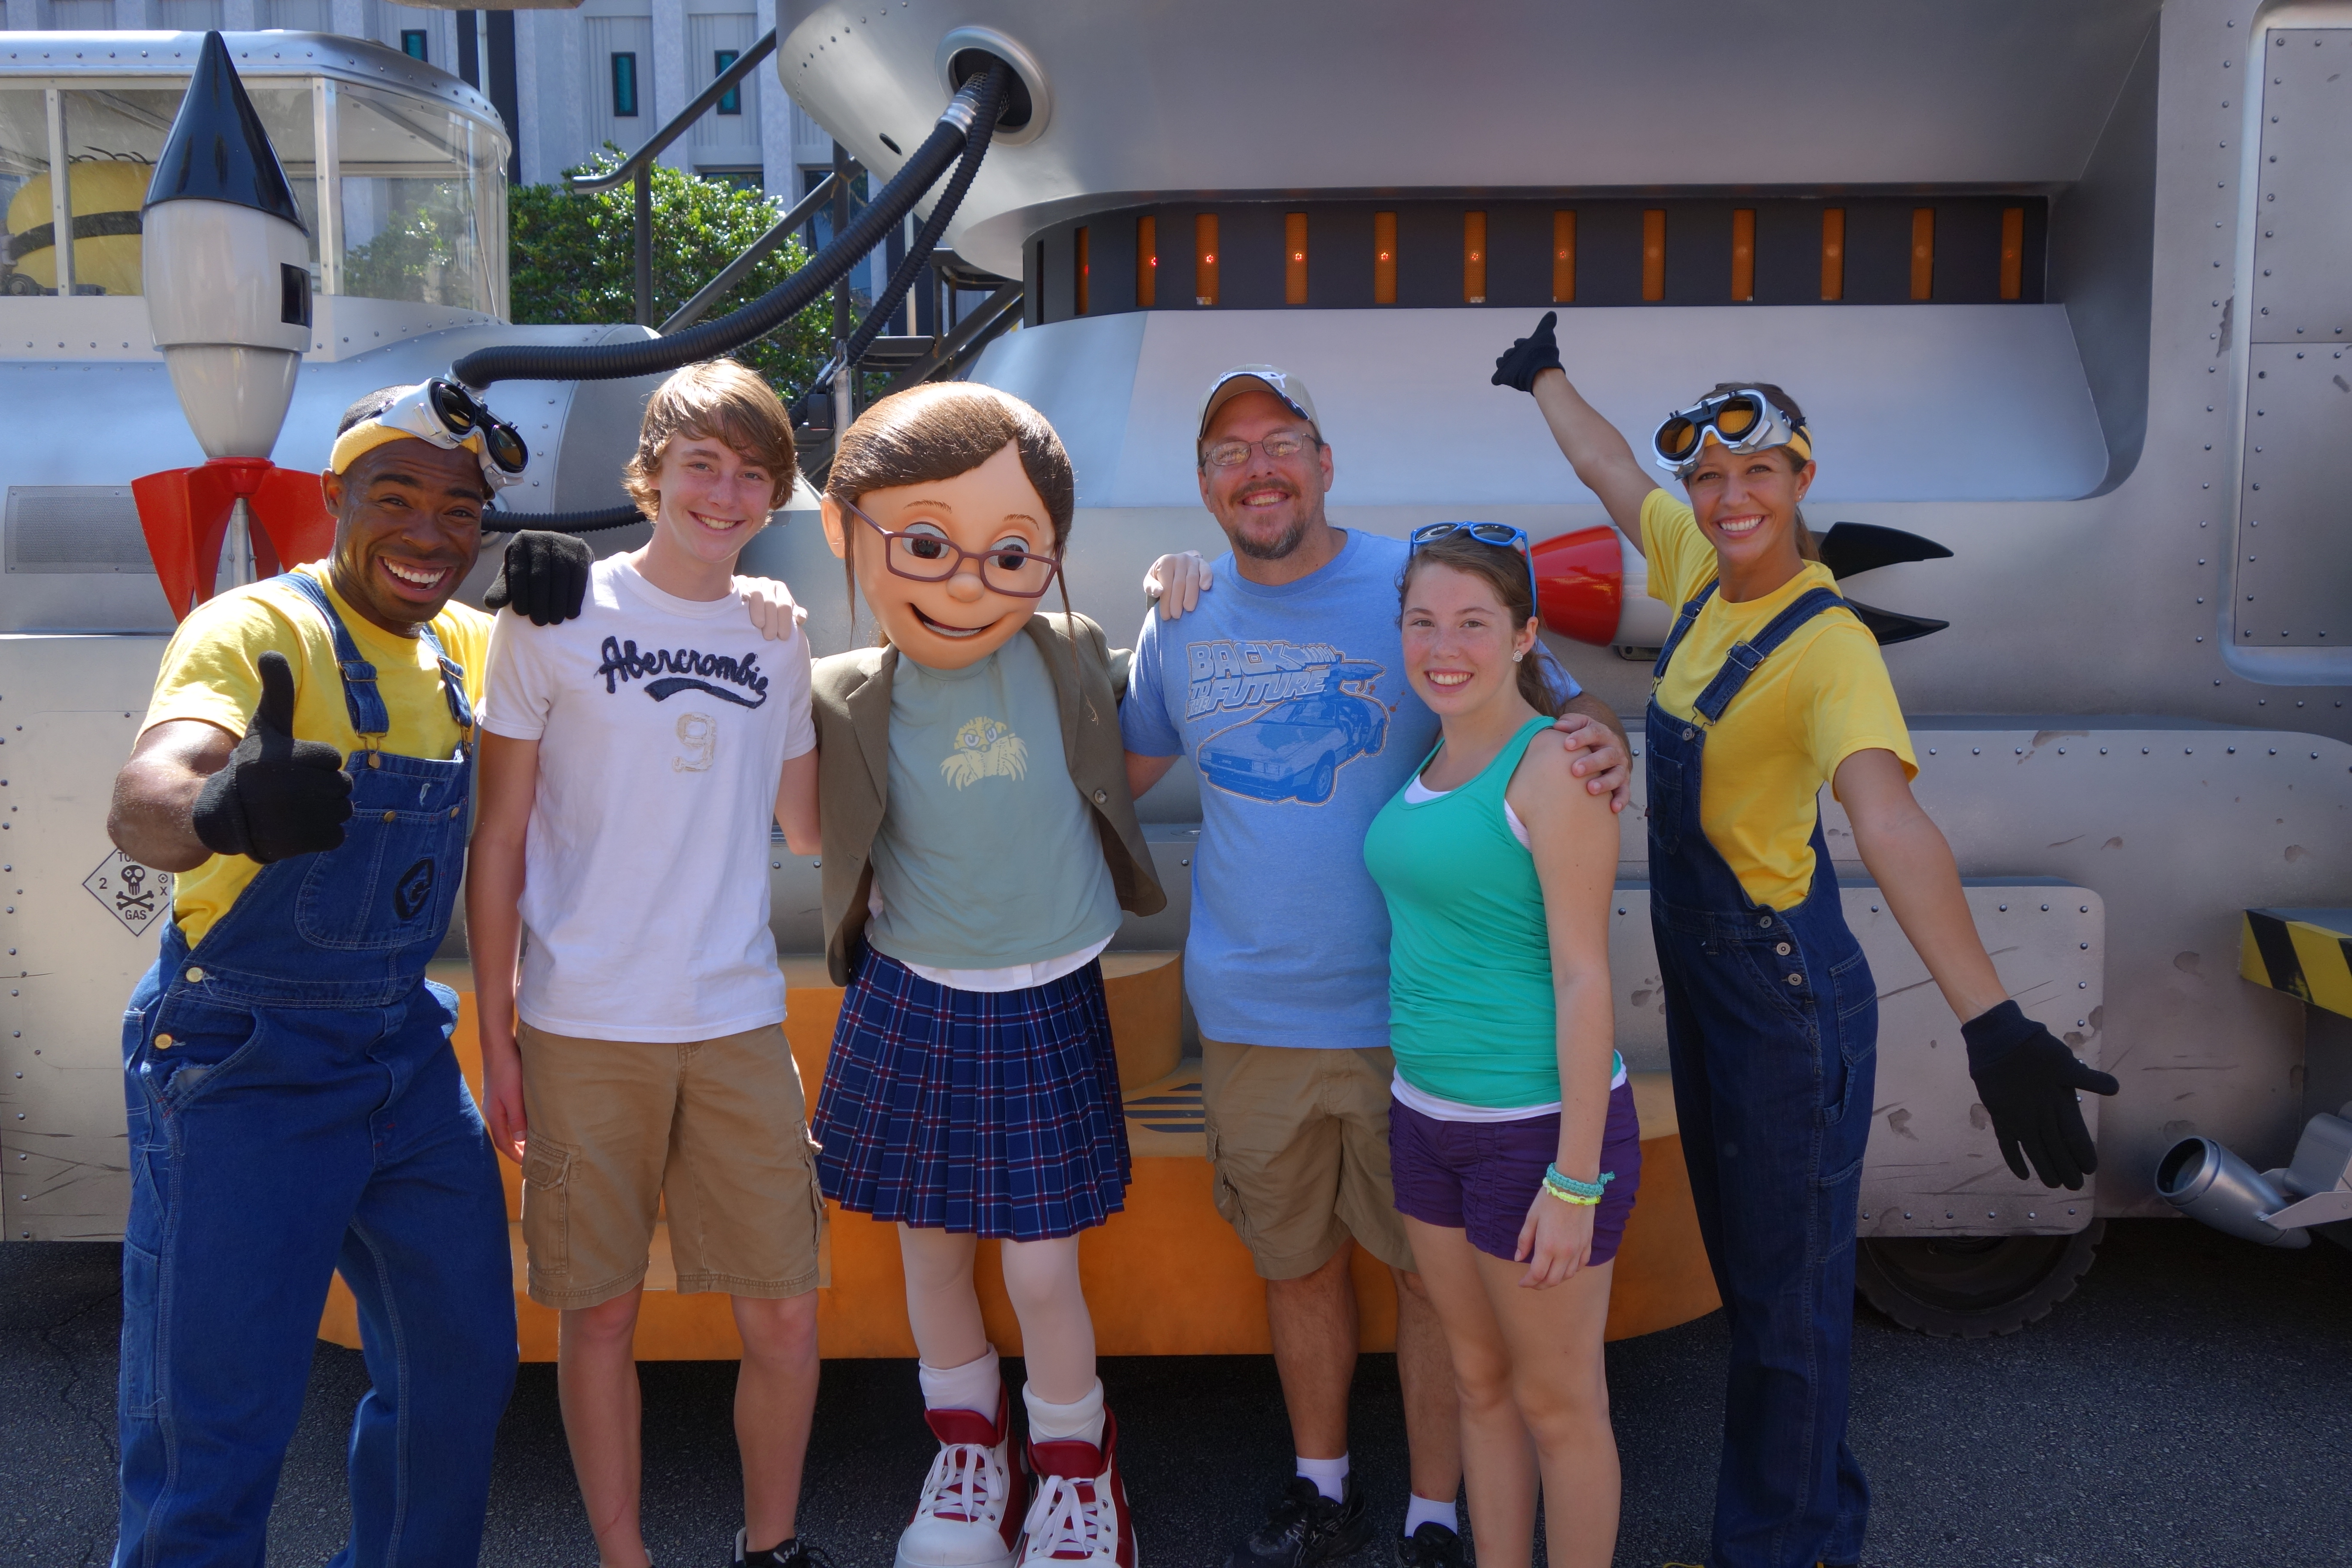 Universal orlando character meet and greets kennythepirates margo from despicable me june 2013 kristyandbryce Images